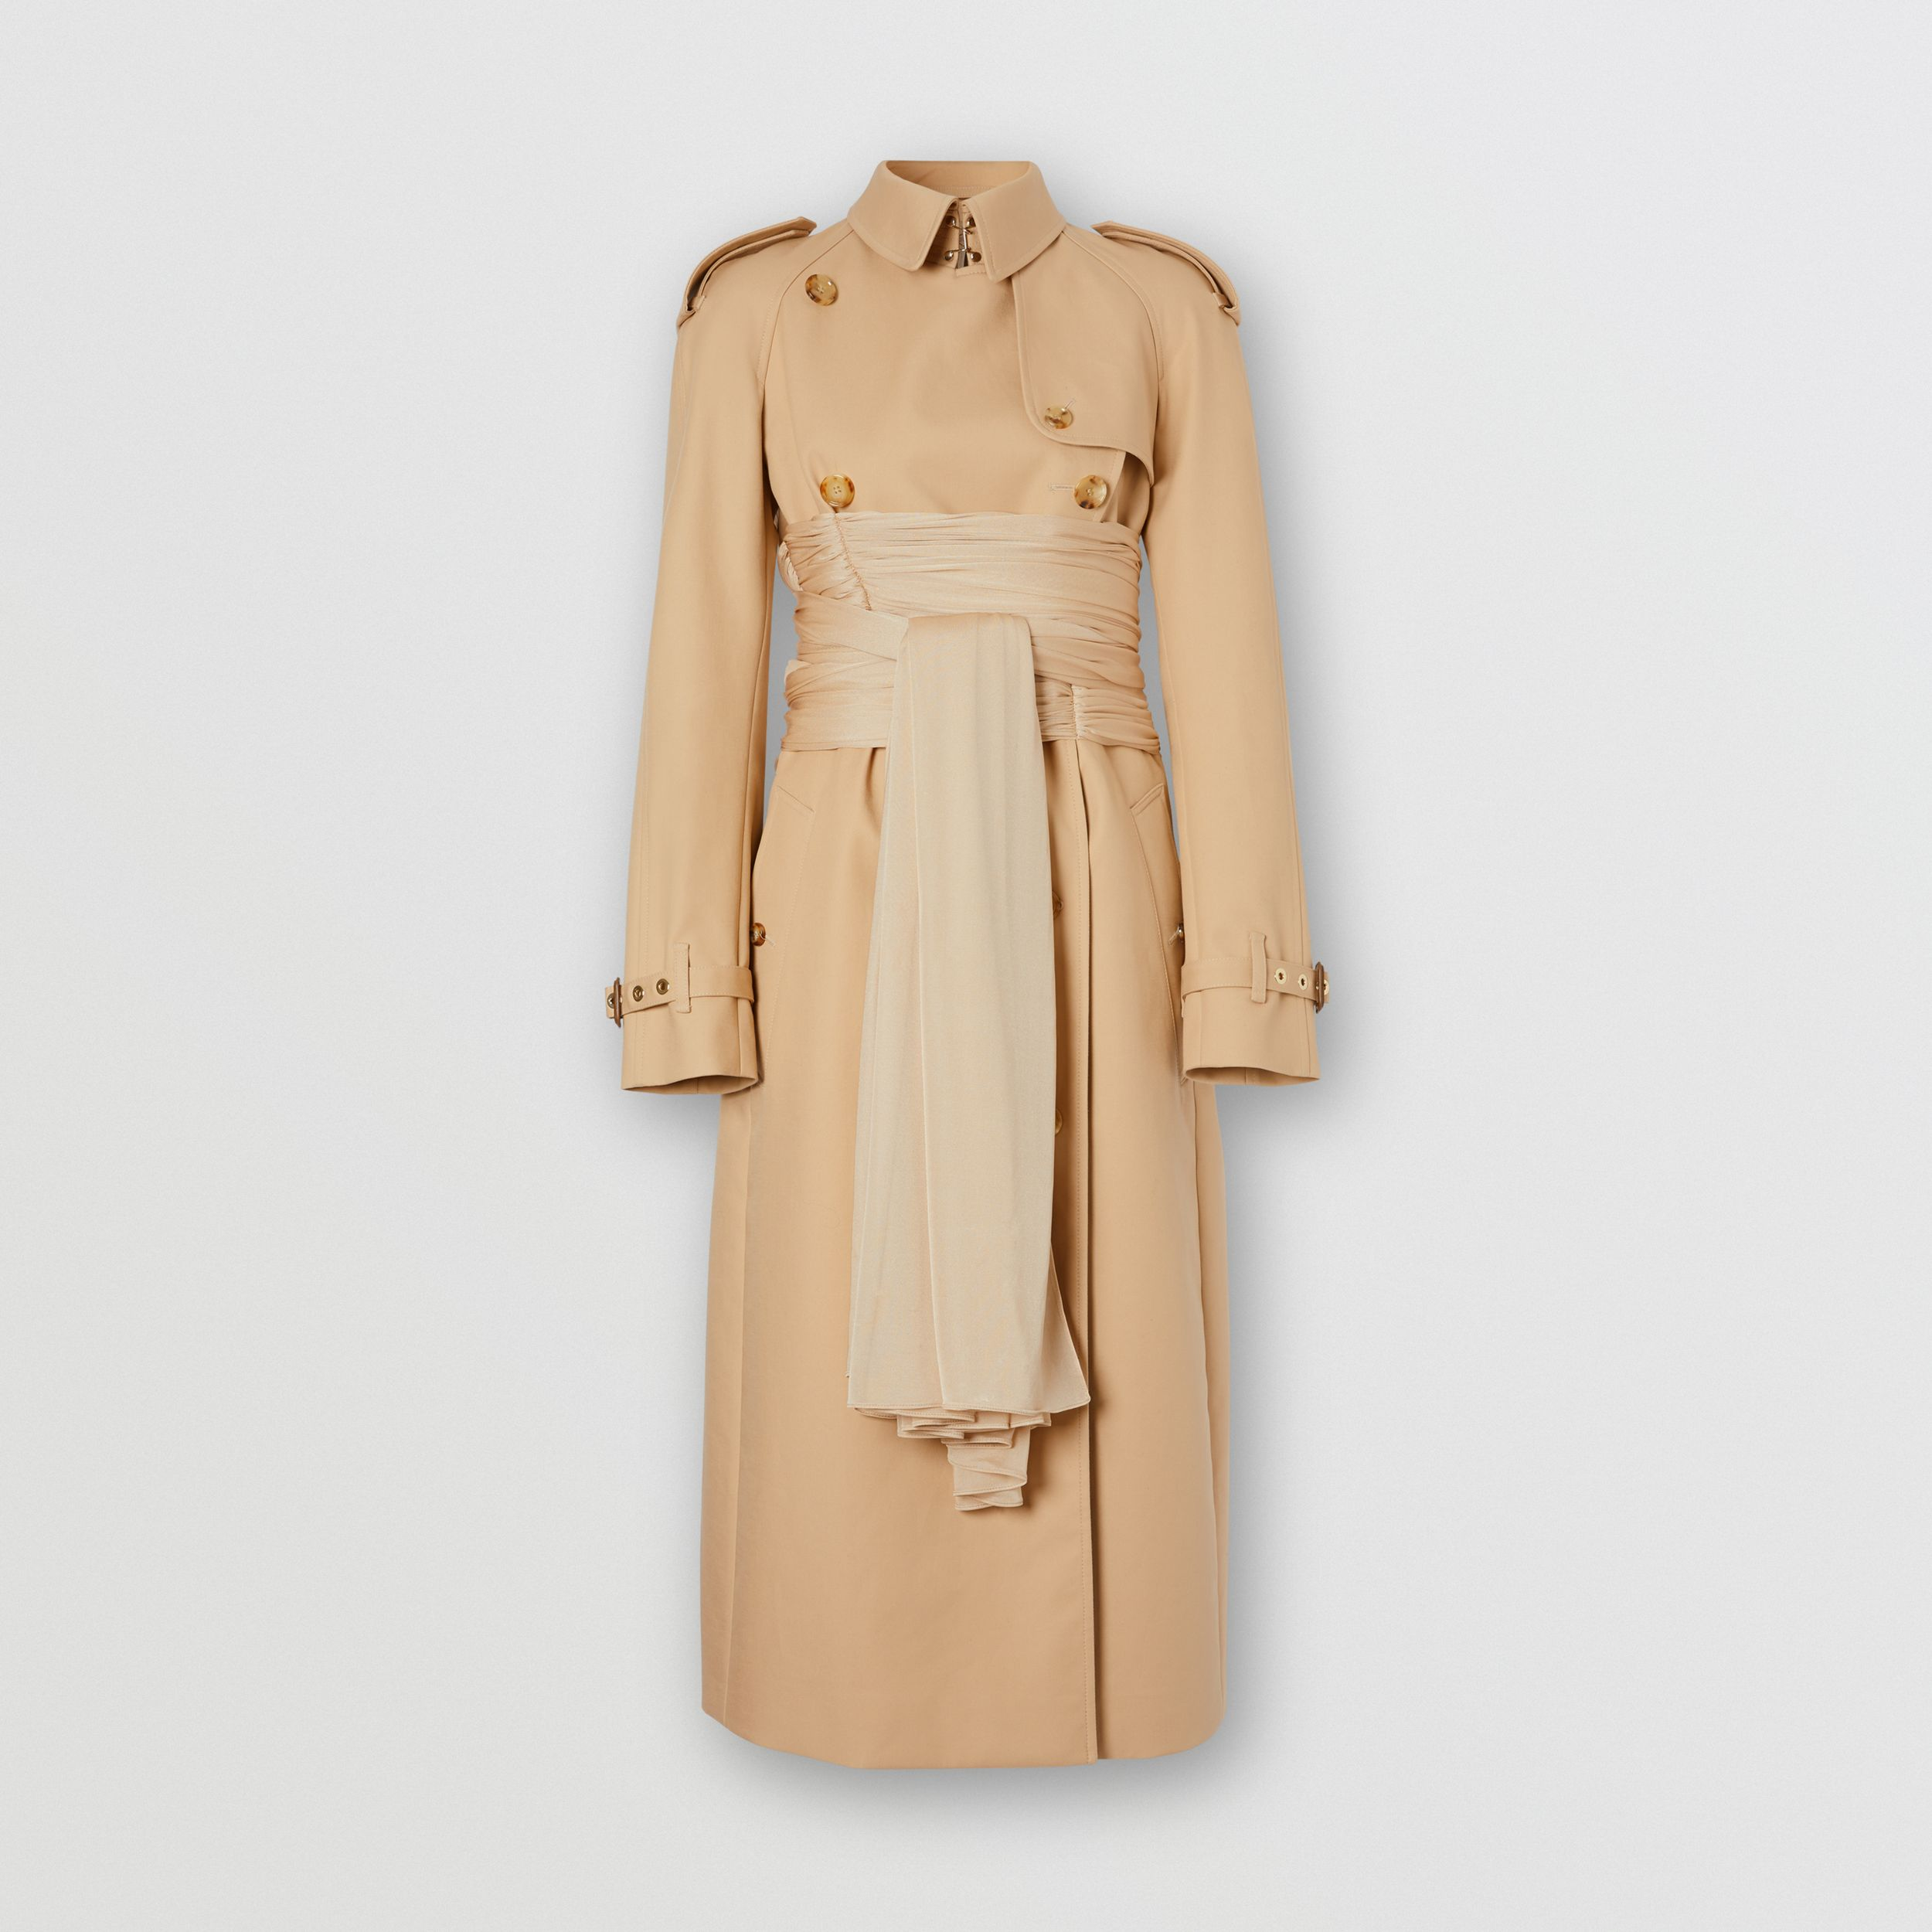 Jersey Sash Detail Cotton Gabardine Trench Coat in Soft Fawn - Women | Burberry - 4